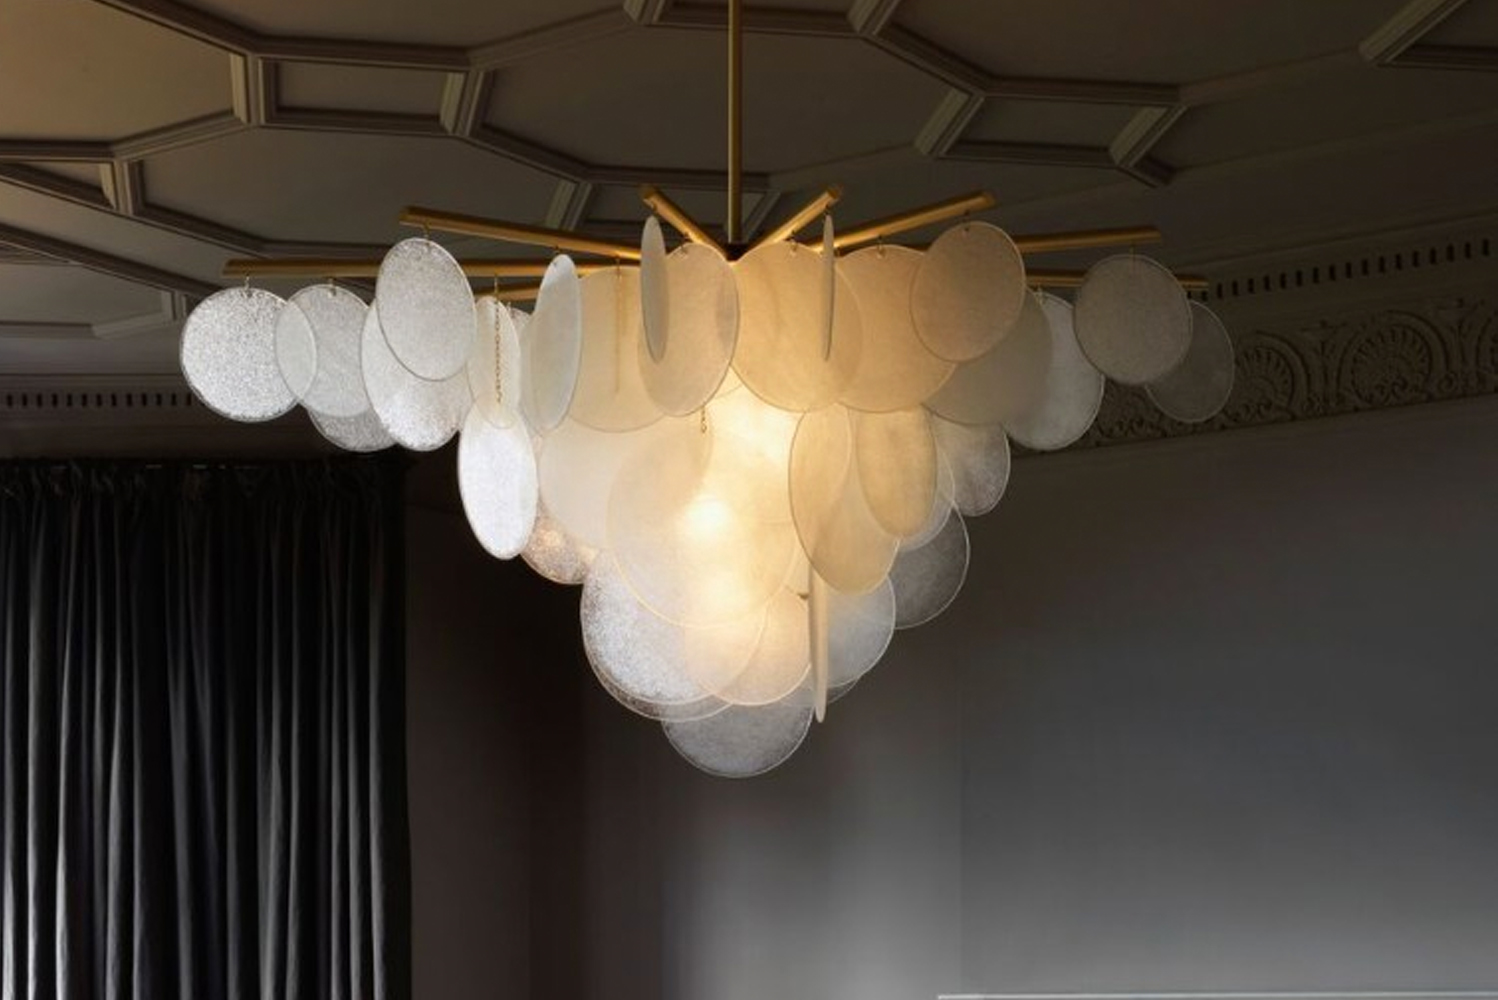 CTO Lighting launched Nimbus, which is available as a pendant and wall light.